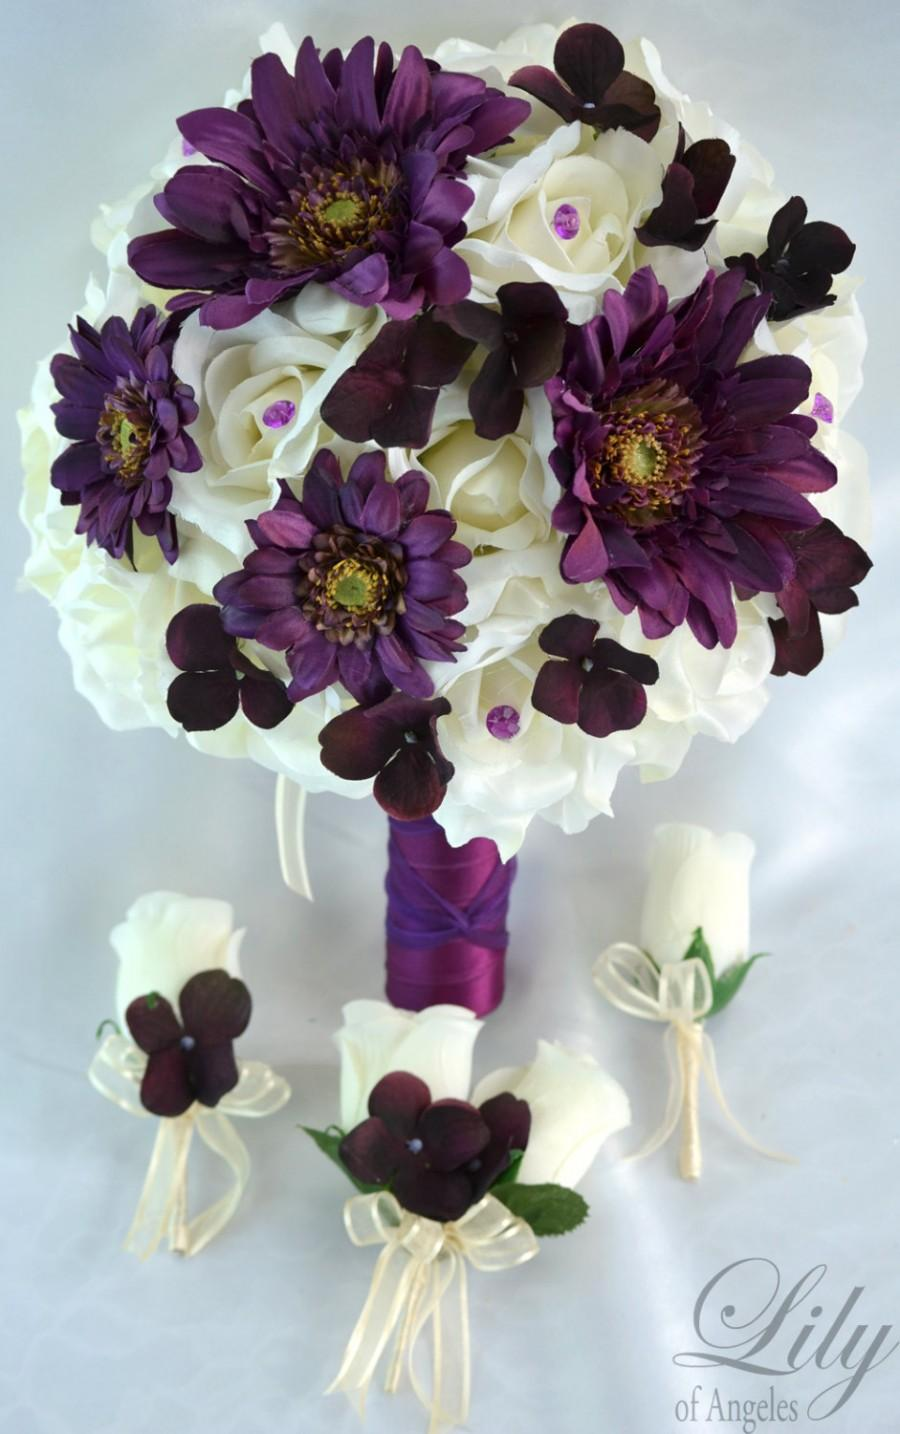 silk flower wedding bouquet packages 17 package silk flowers wedding bouquet artificial 7390